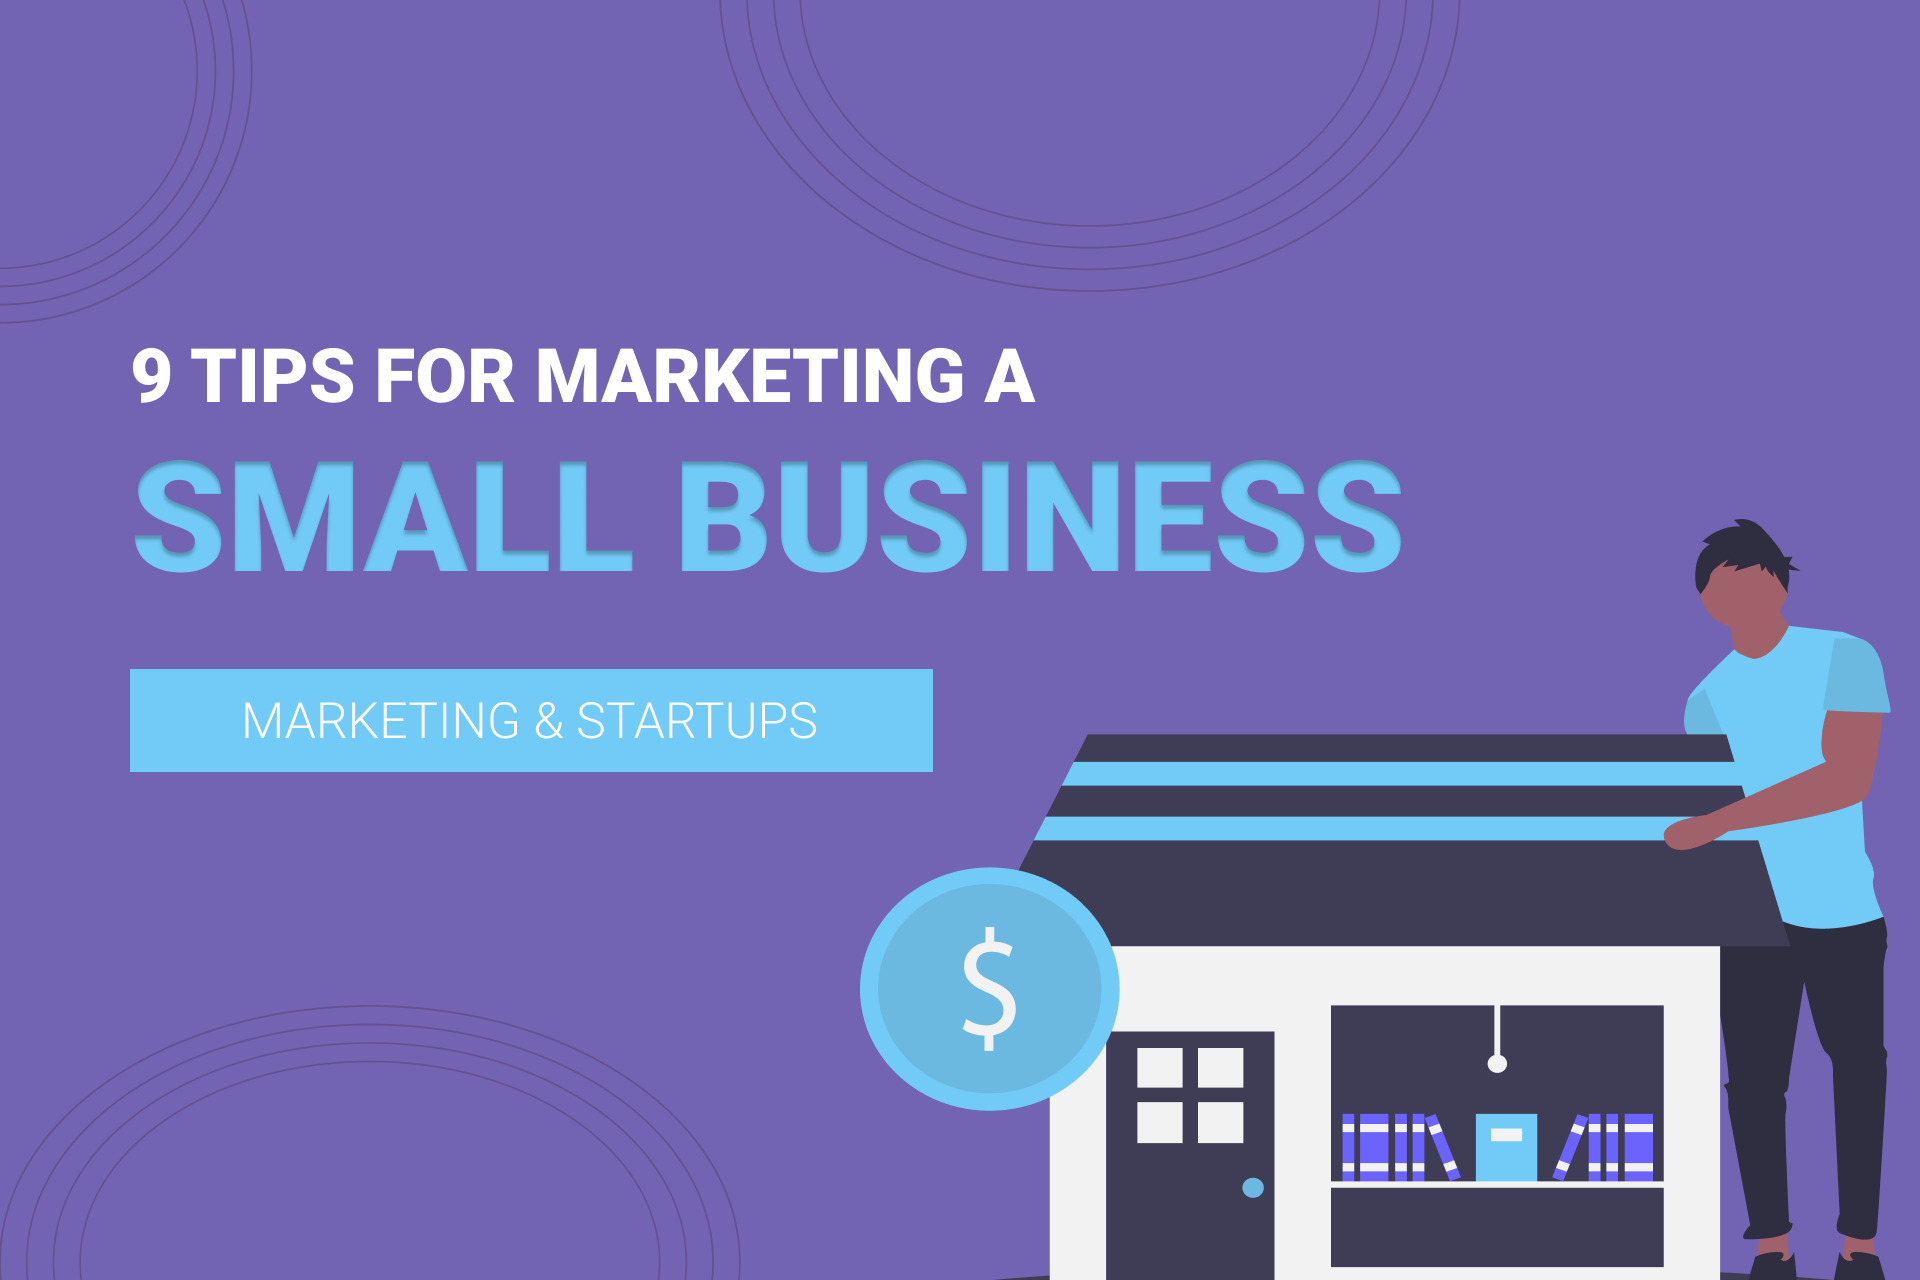 9 Top Tips For Marketing A Small Business